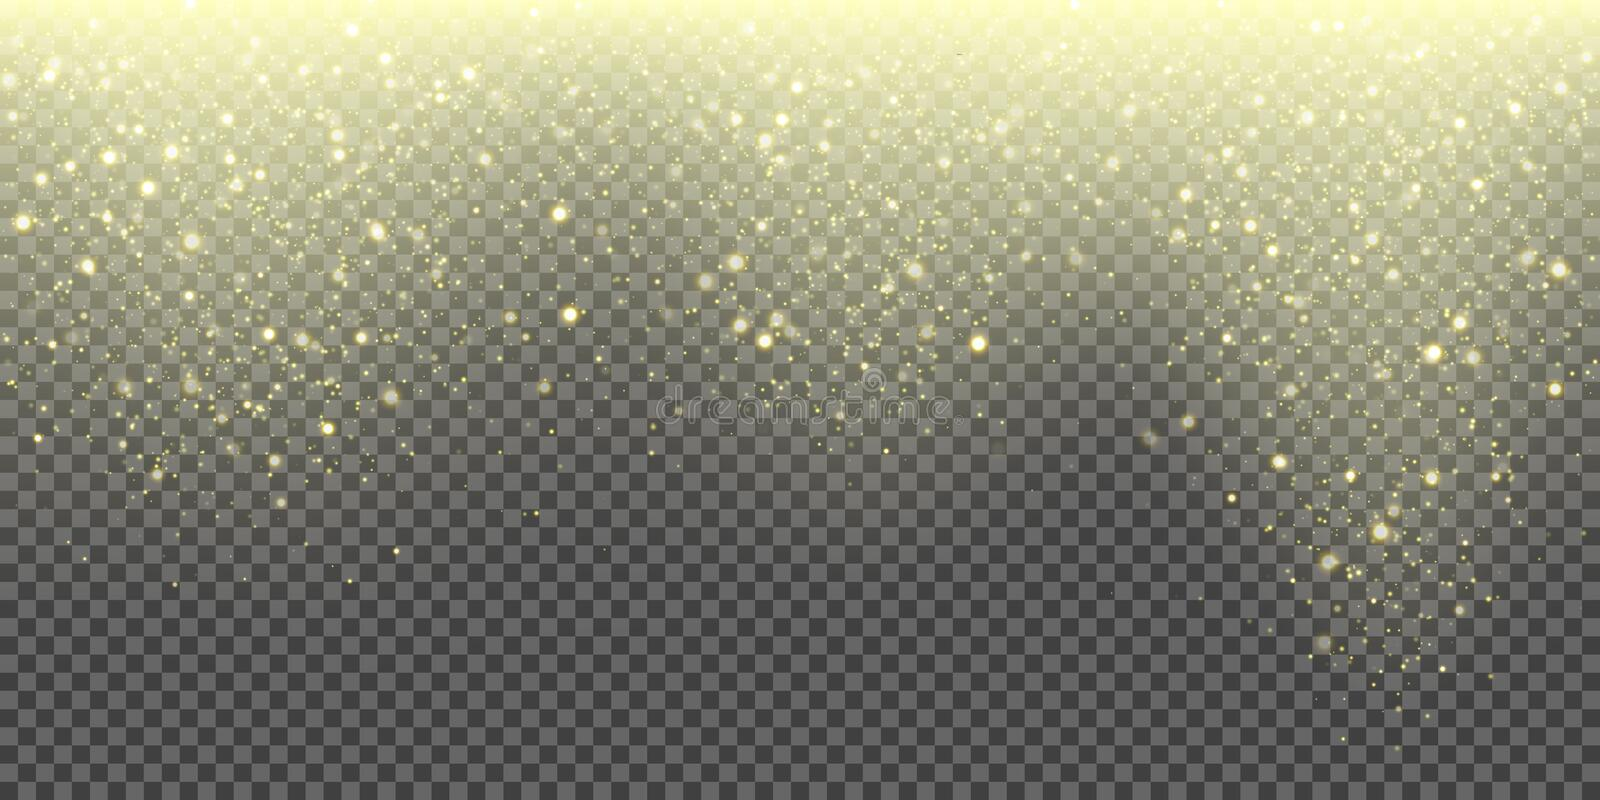 Snow falling vector background of golden sparkling snowfall and glittering snowflakes. Vector abstract glowing gold glitter royalty free illustration